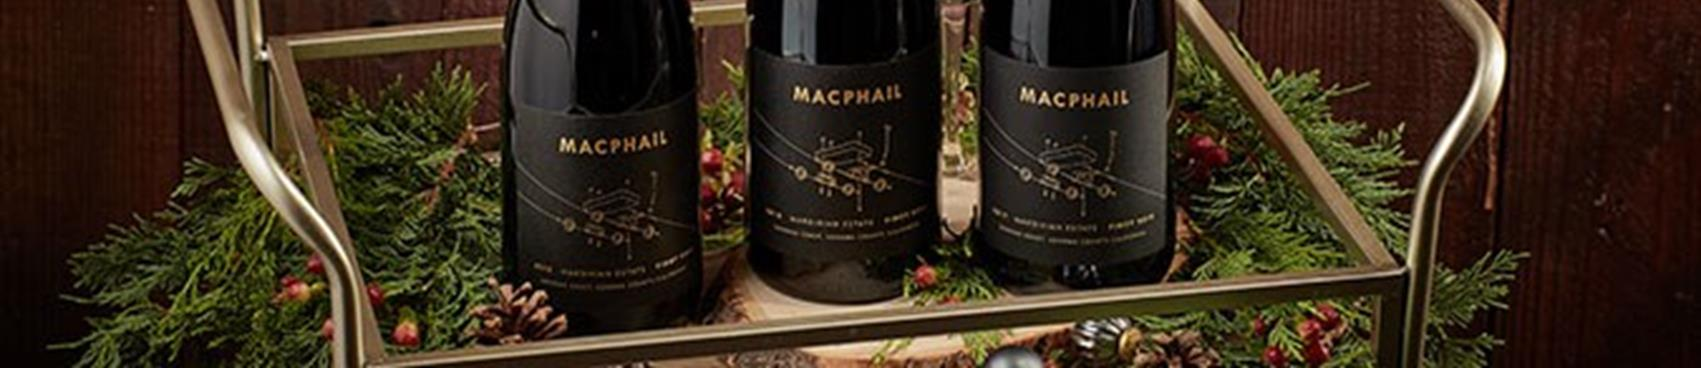 Purchase Tickets to Holiday Open House at MacPhail Wines on CellarPass